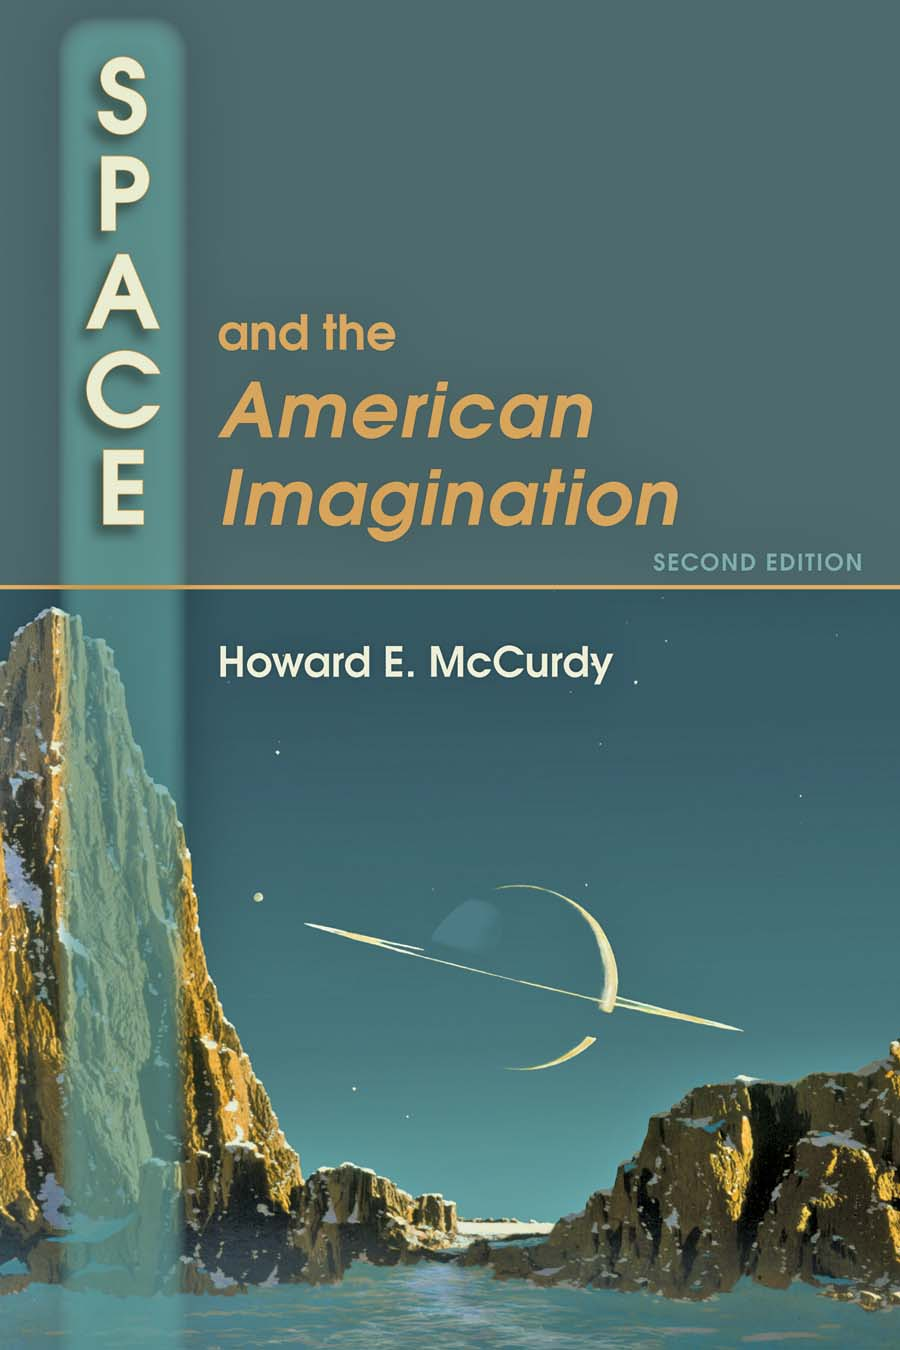 Space and the American Imagination 2e imagination